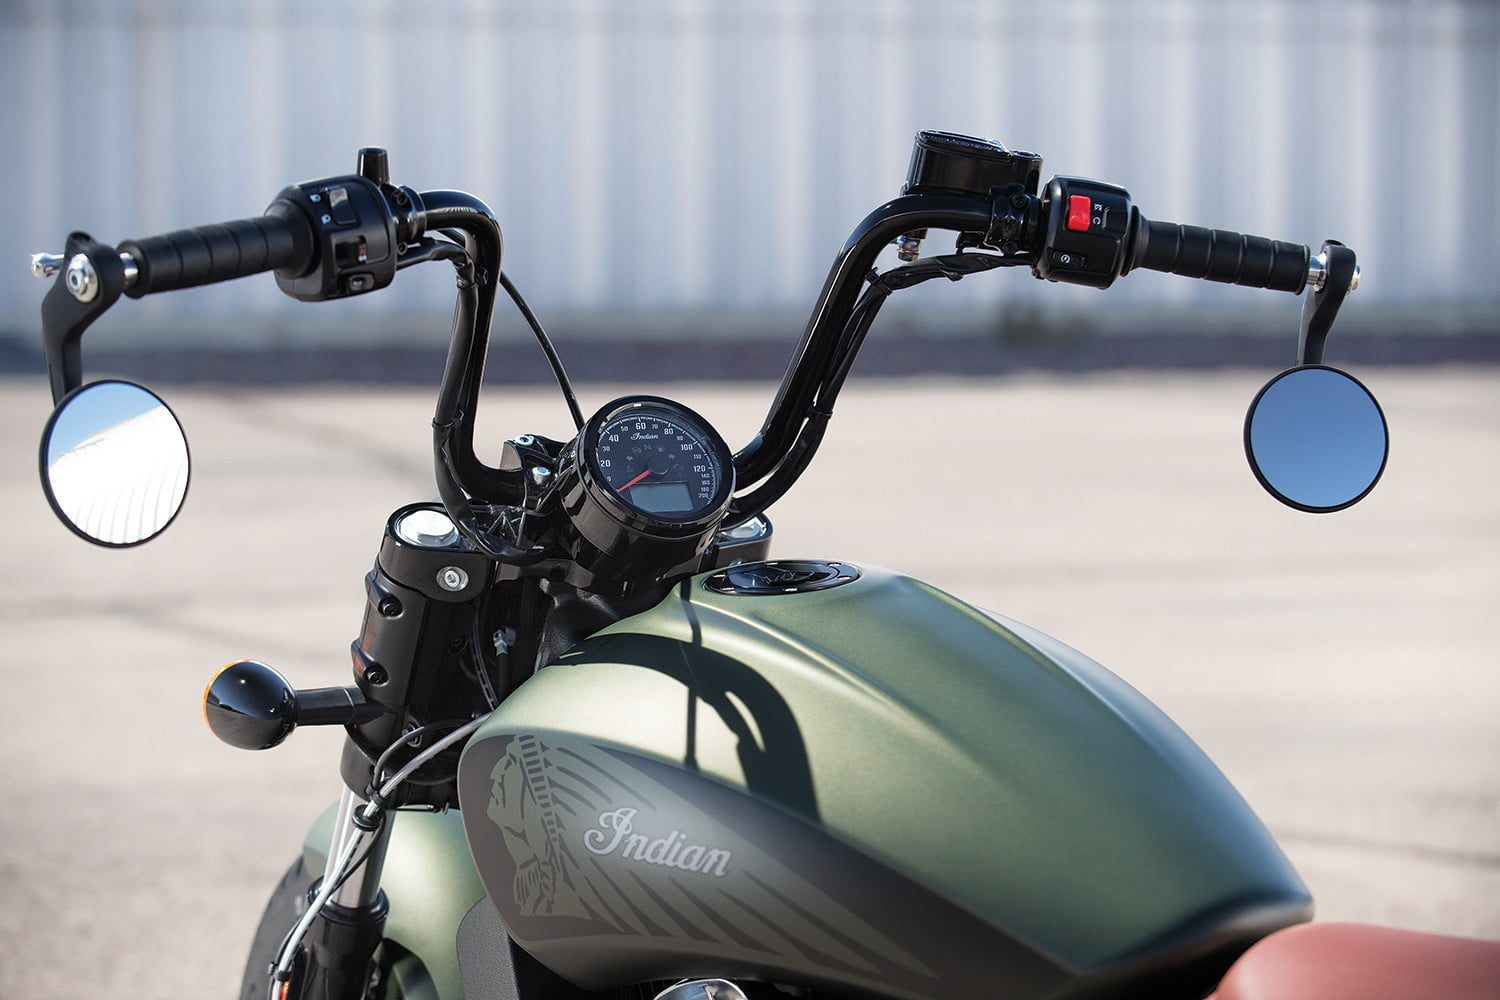 indian <entity>motorcycle</entity> 2020 lineup scout bobber twenty 09